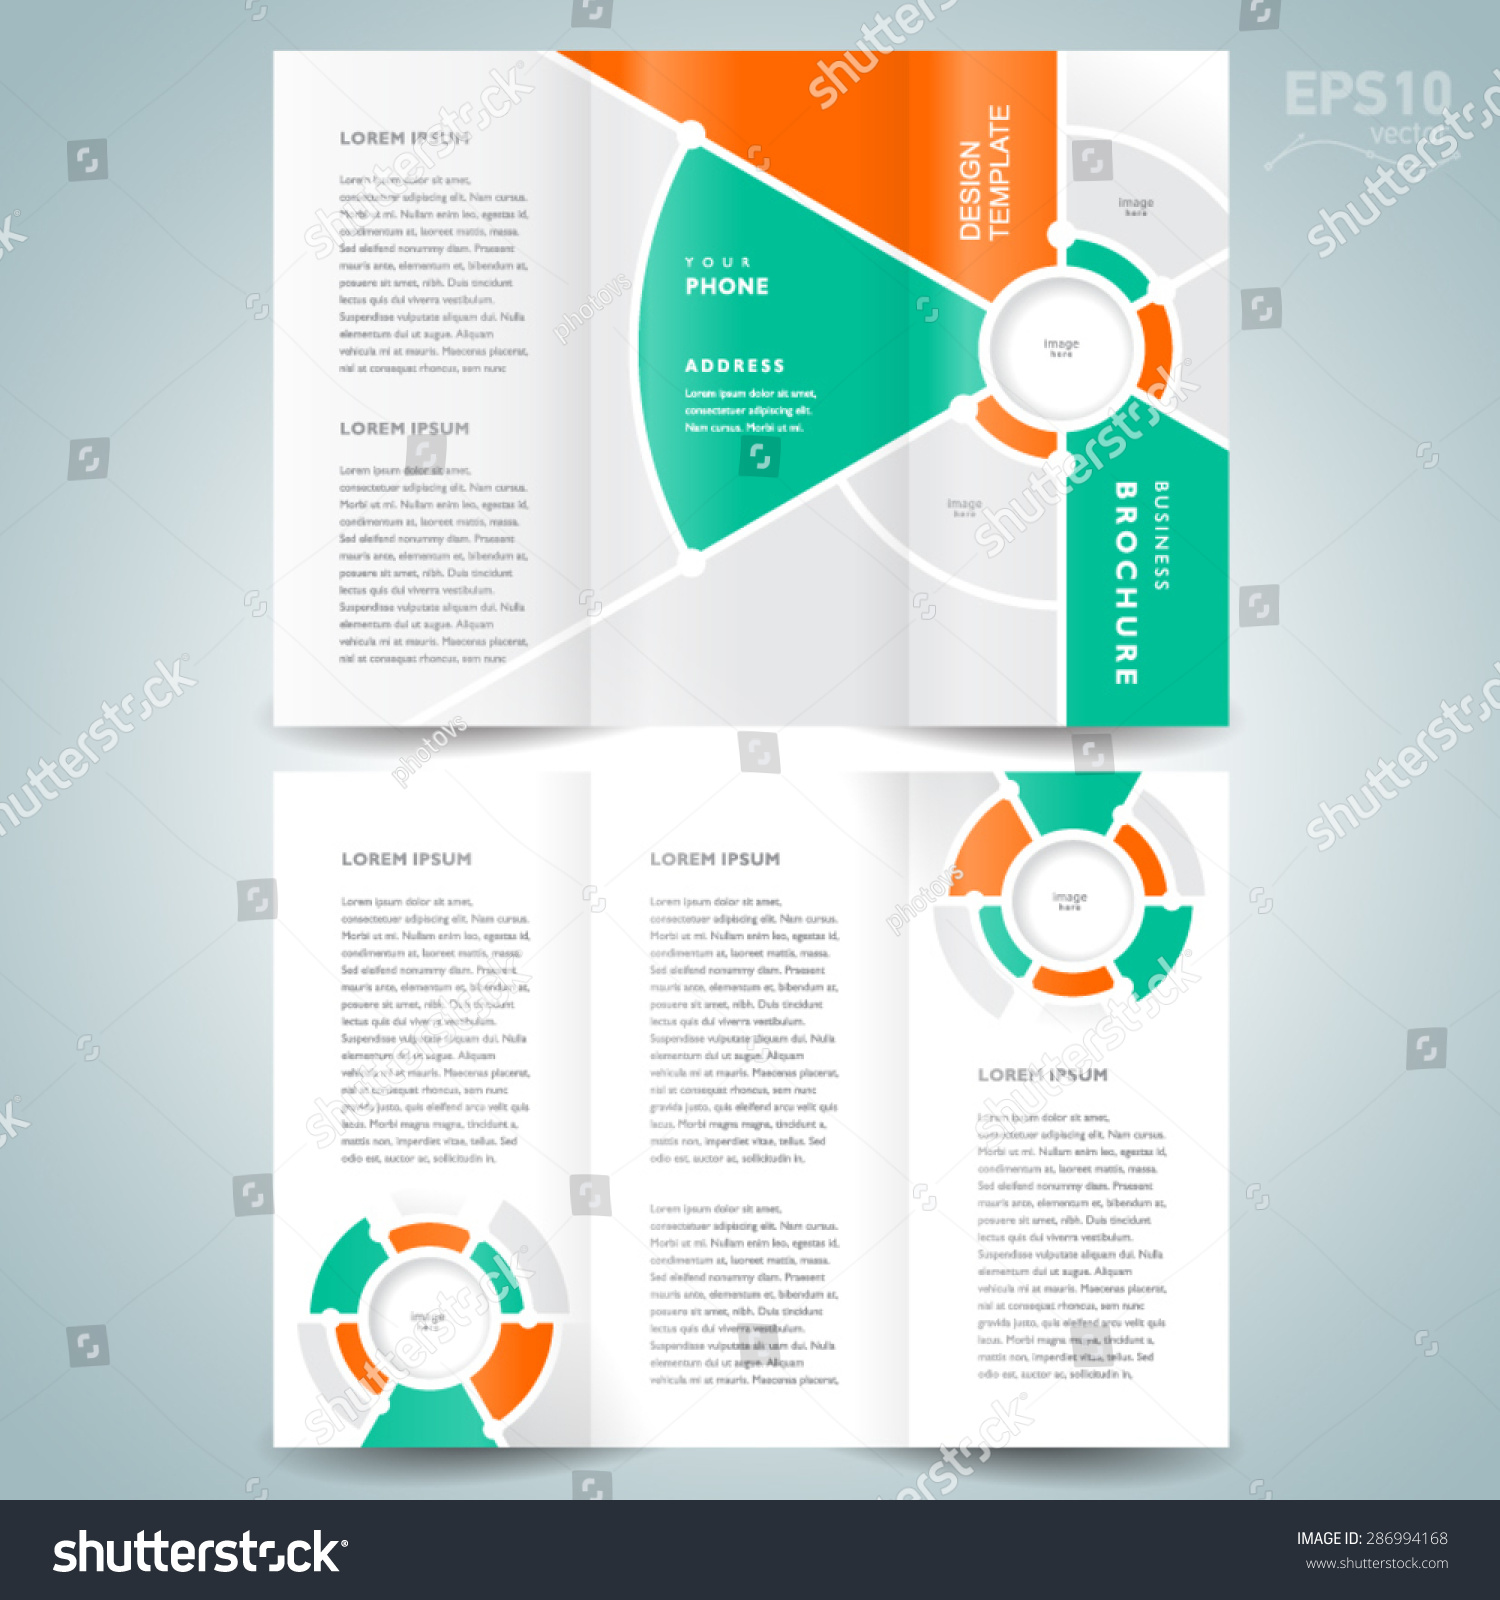 circle brochure template - brochure design template vector trifold geometric stock